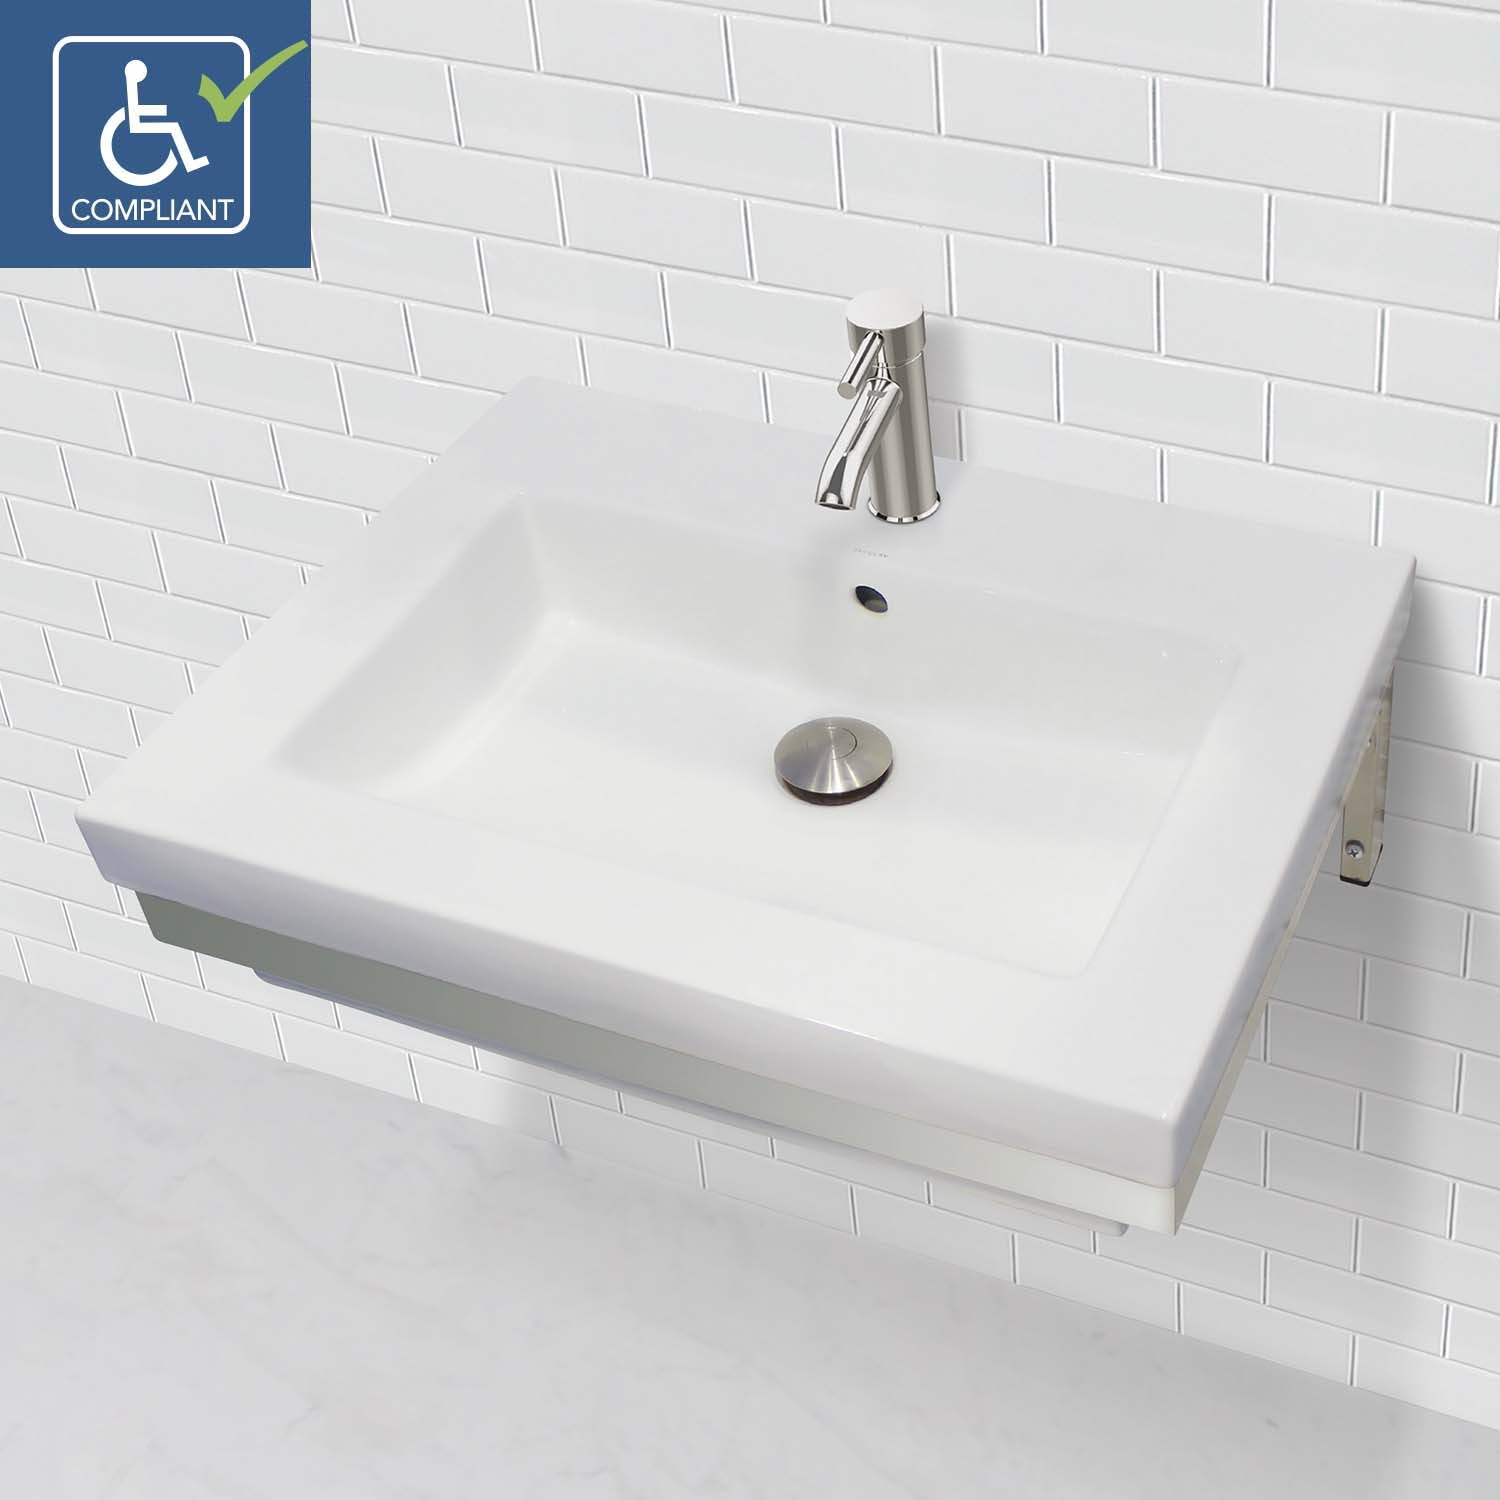 Rectangular Sinks Bathroom Decolav Coral 1819w 1b Cwh Wall Mount Rectangular Vitreous China